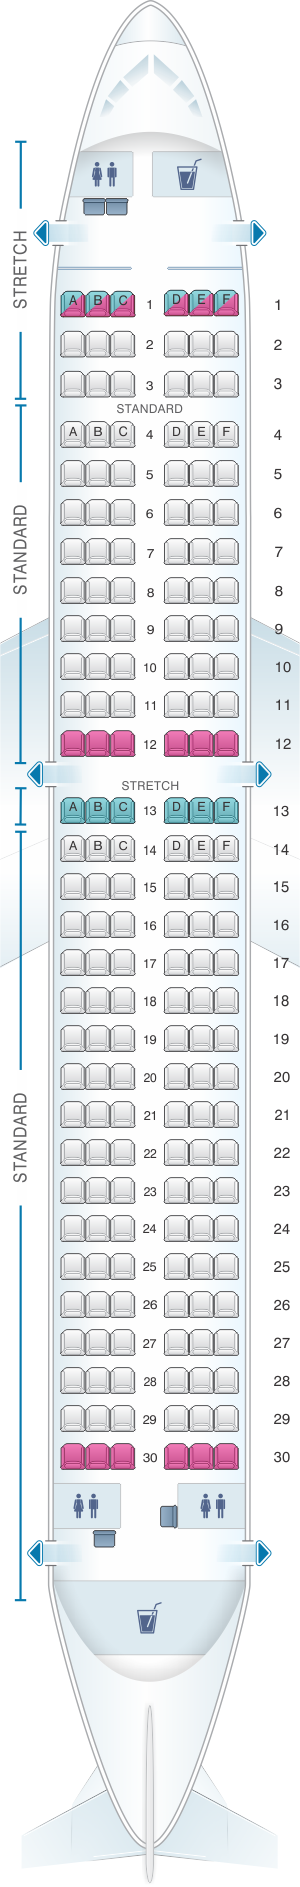 Seat map for Frontier Airlines Airbus A320neo